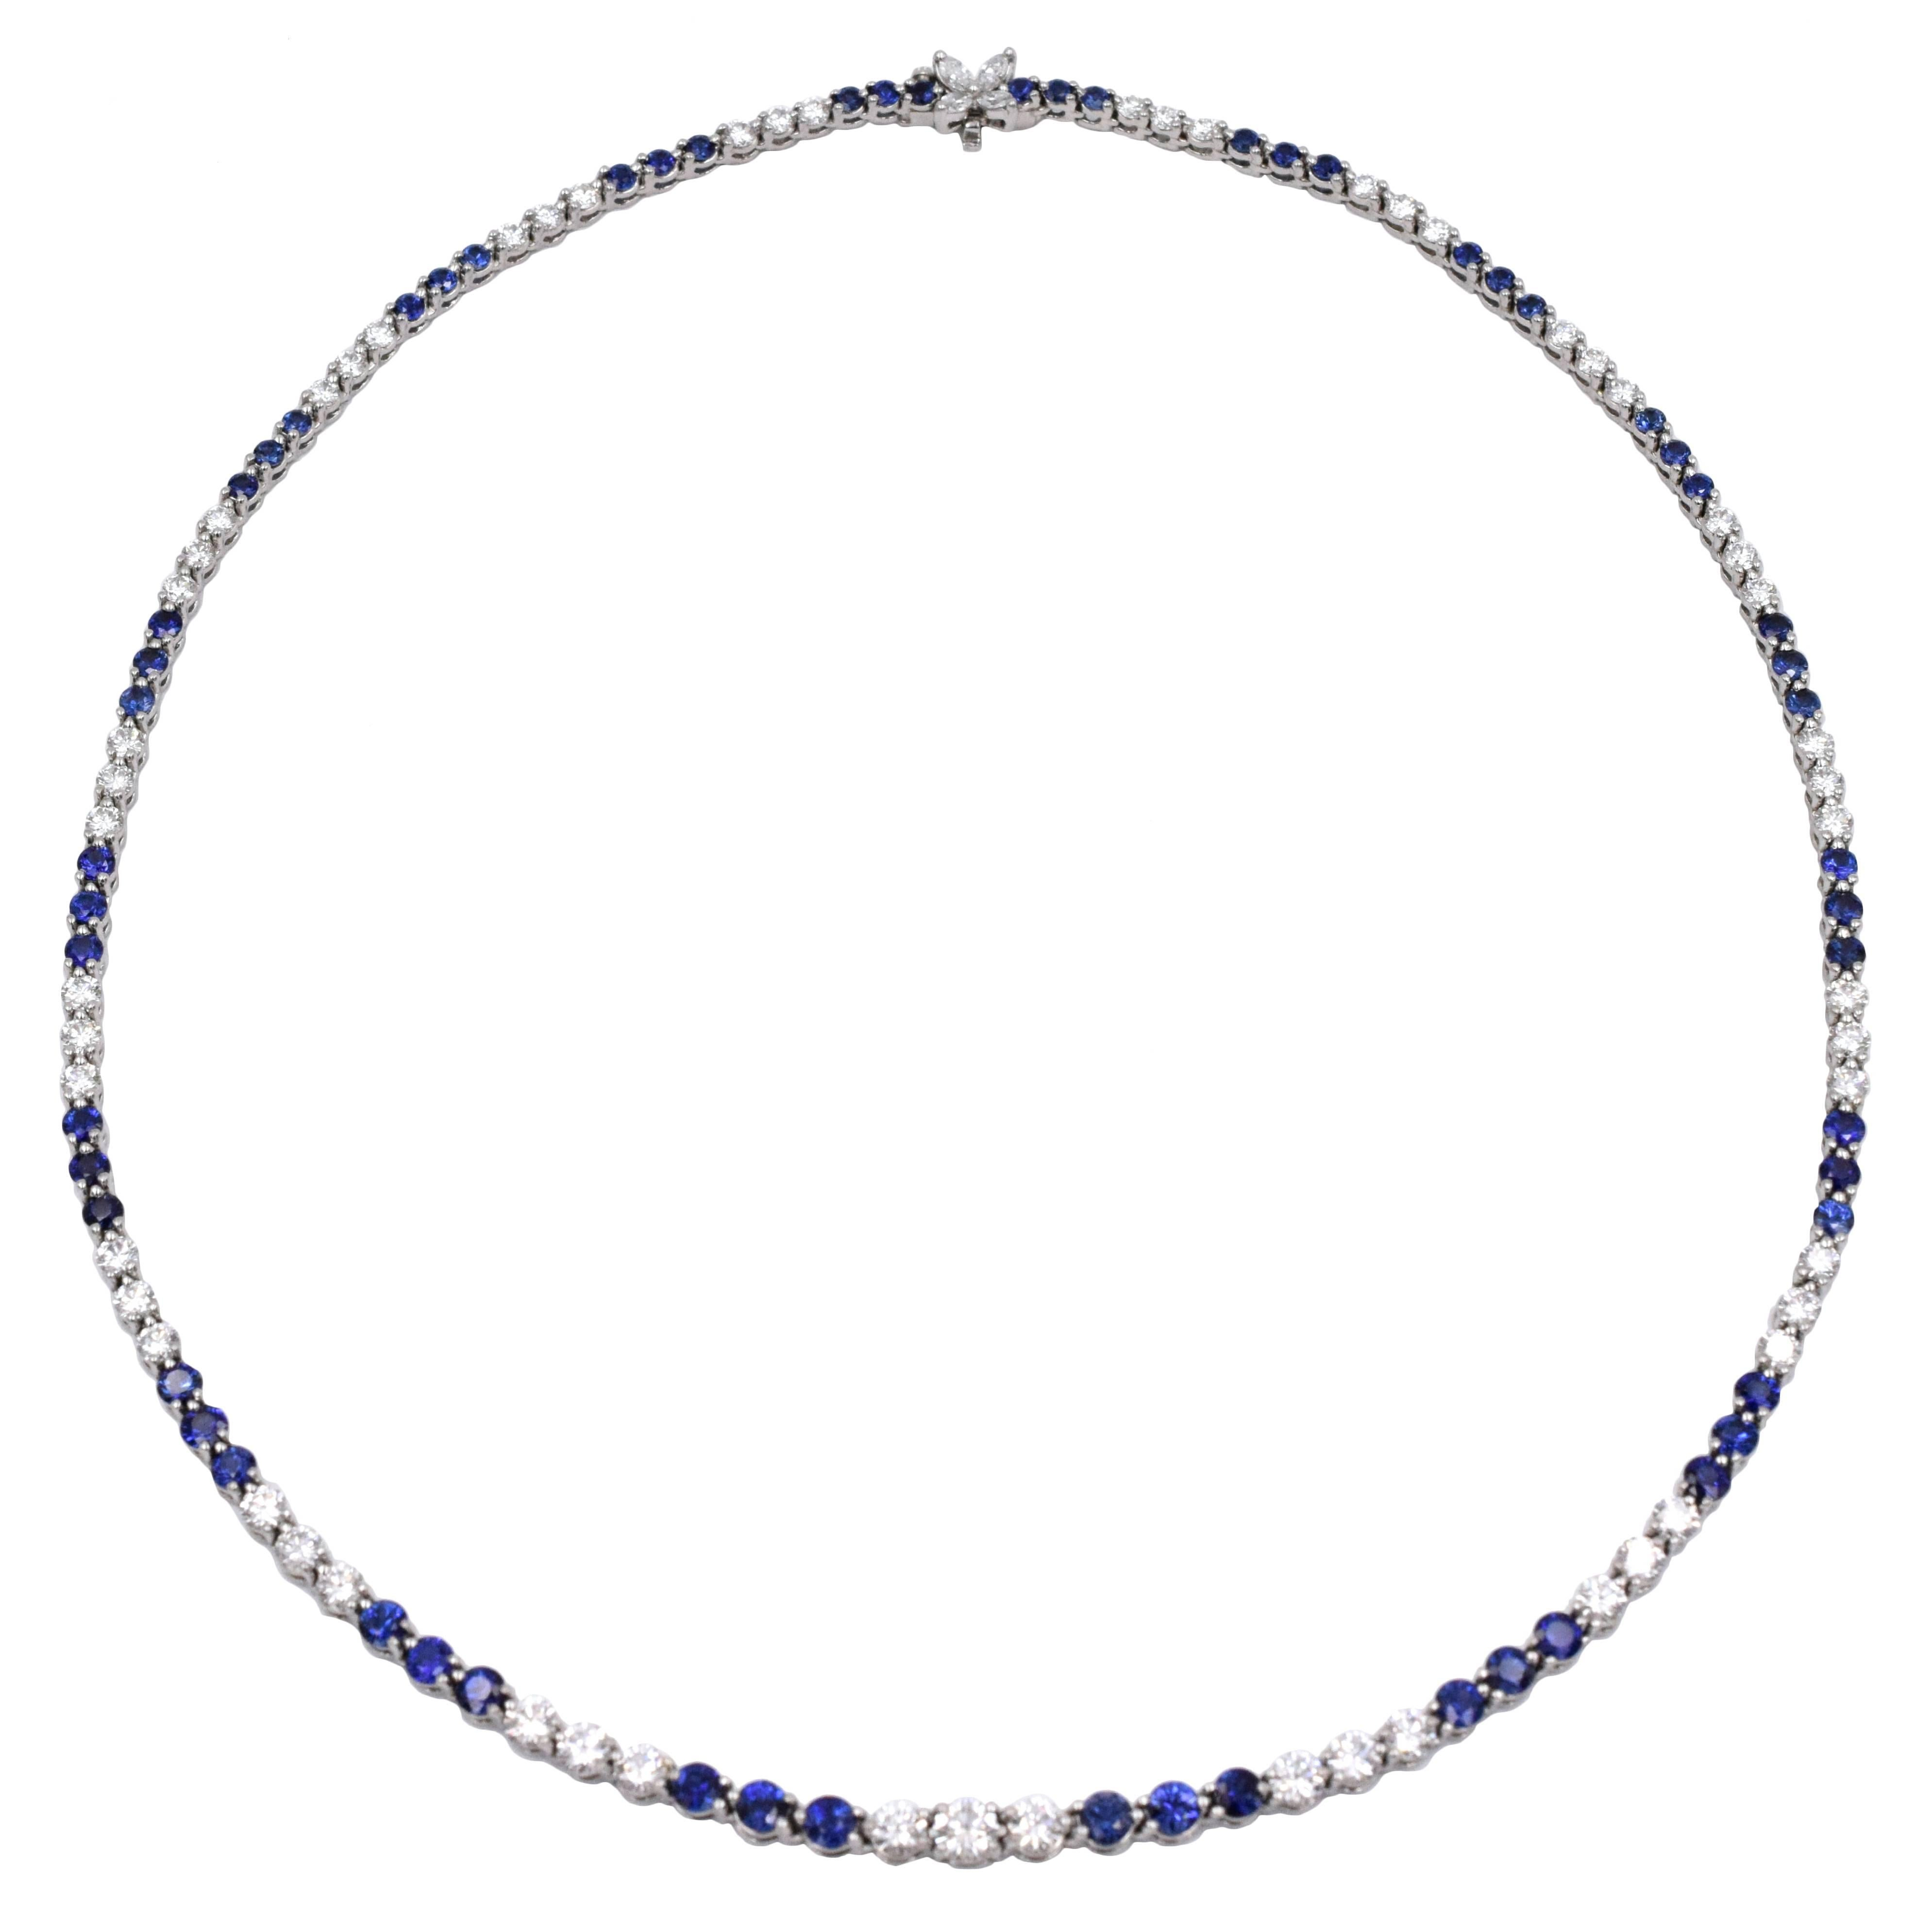 Tiffany & Co Diamond and Sapphire Necklace